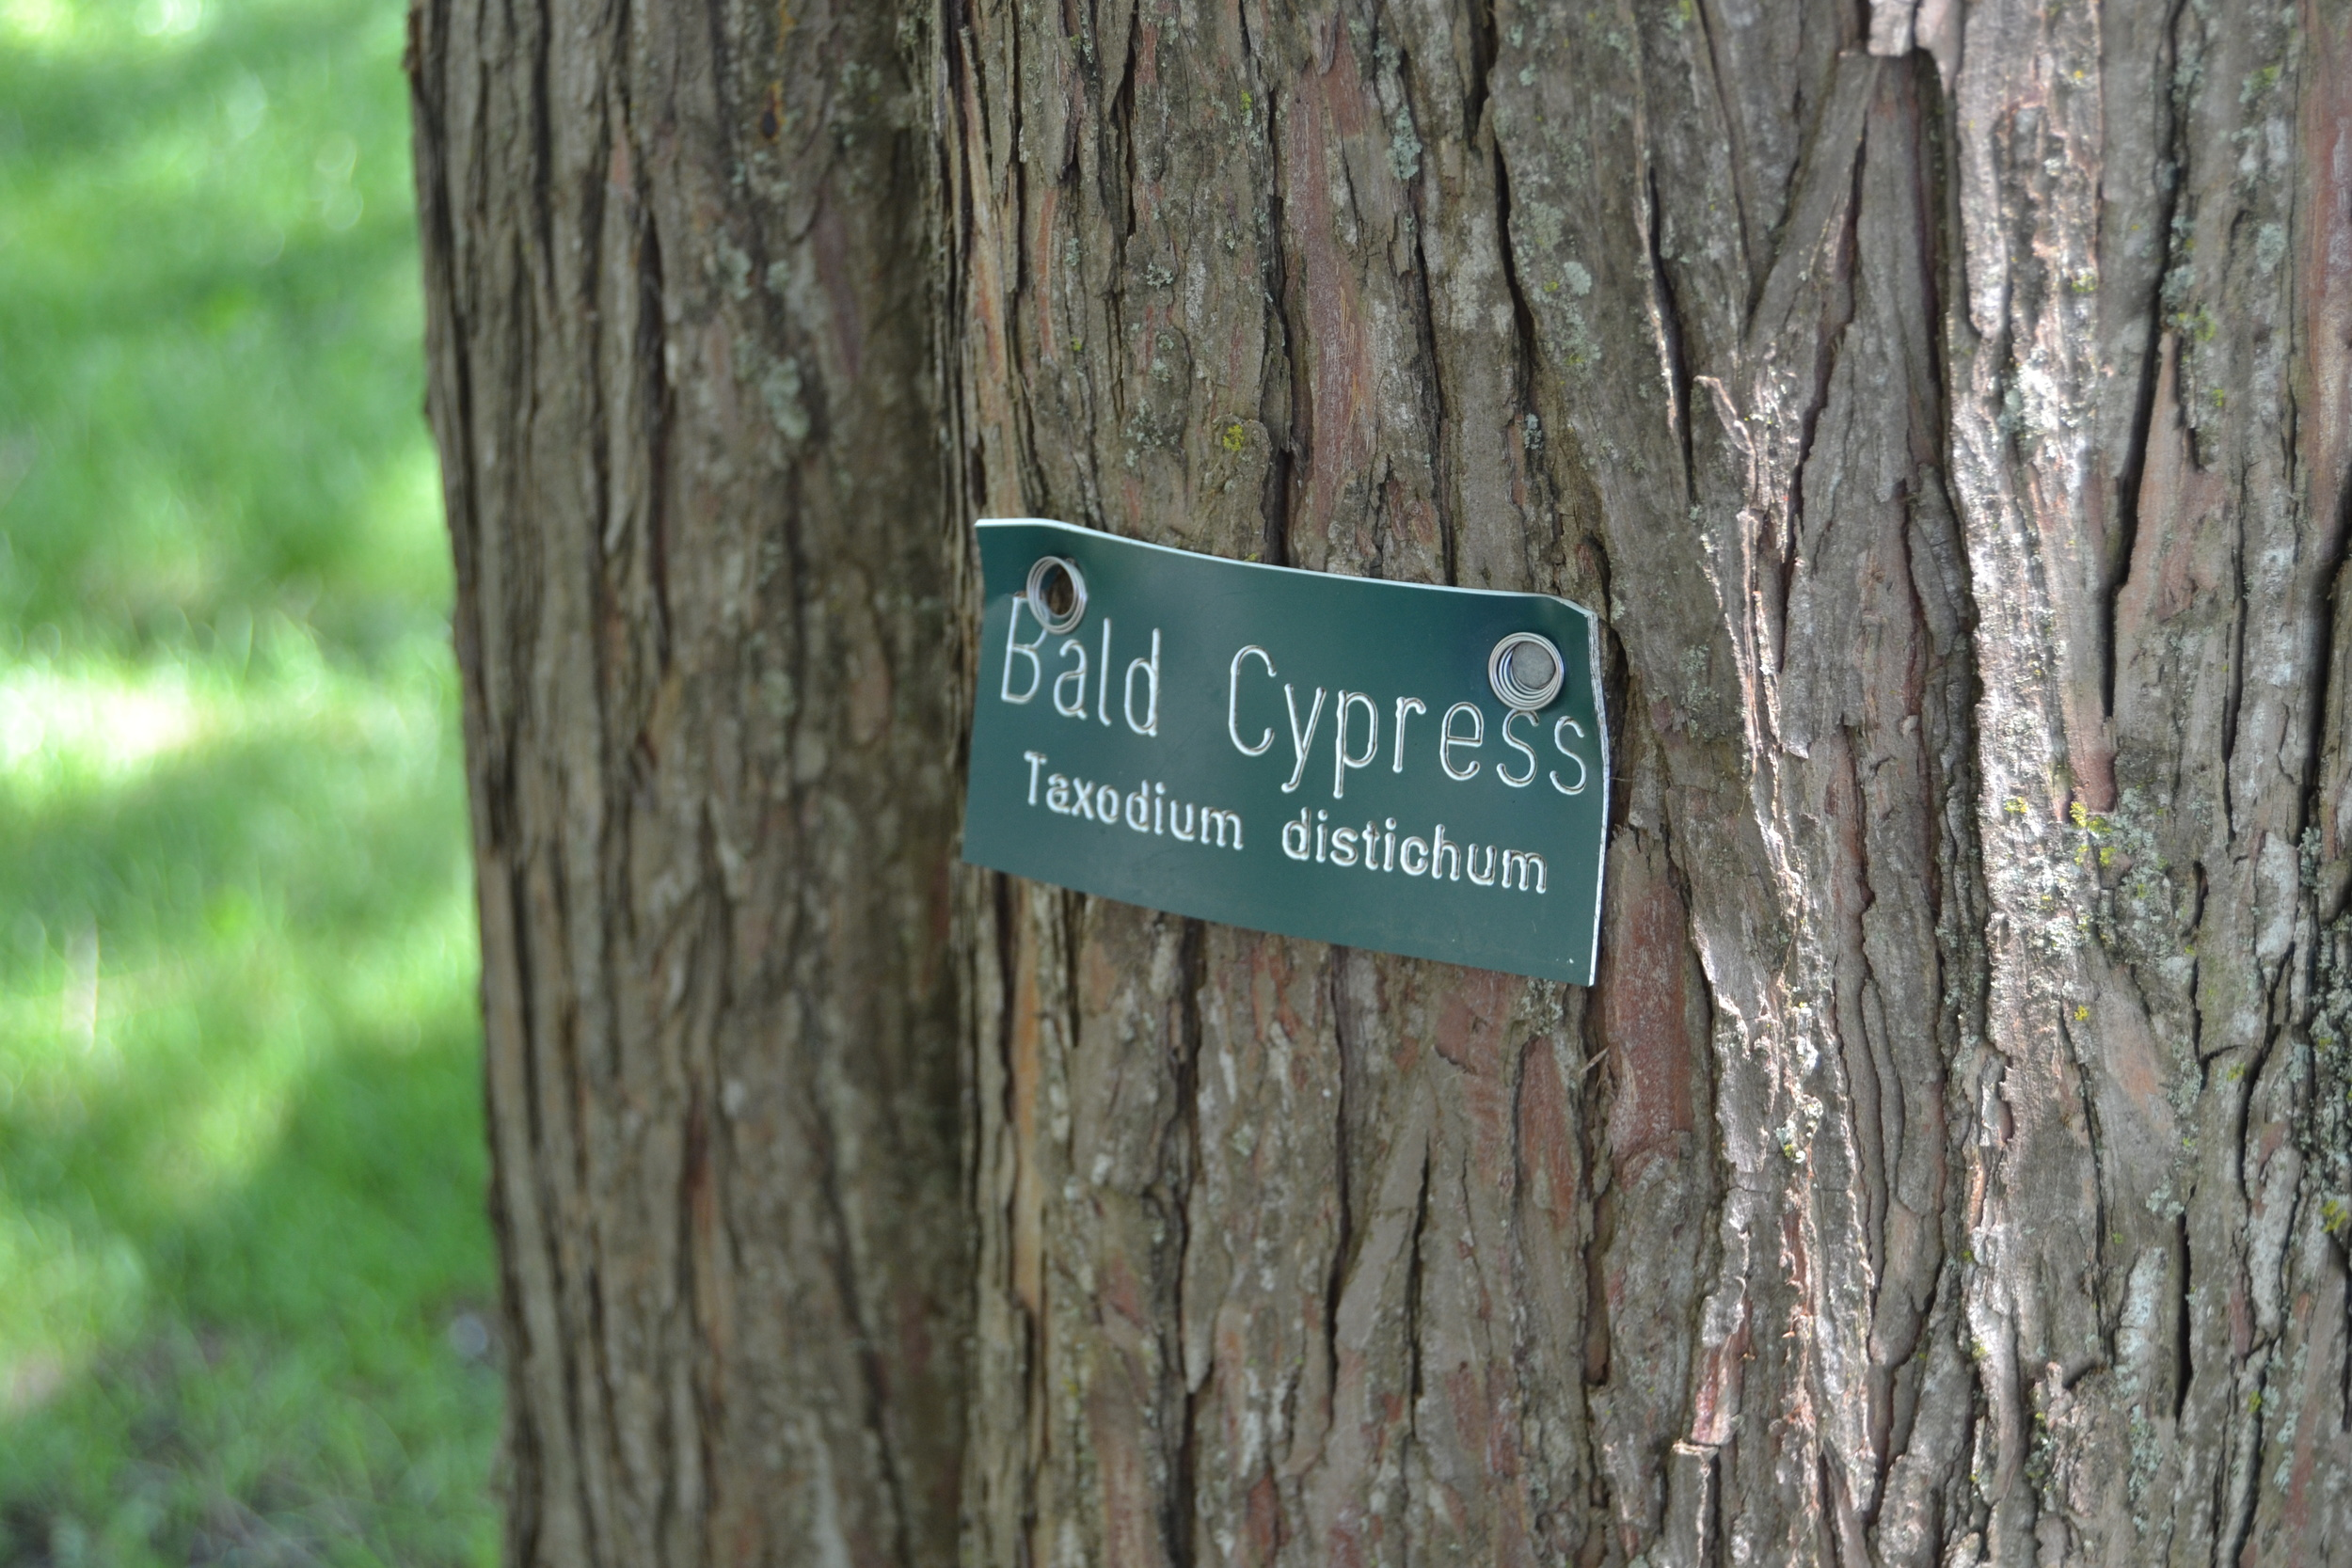 One of the many trees of the arboretum.